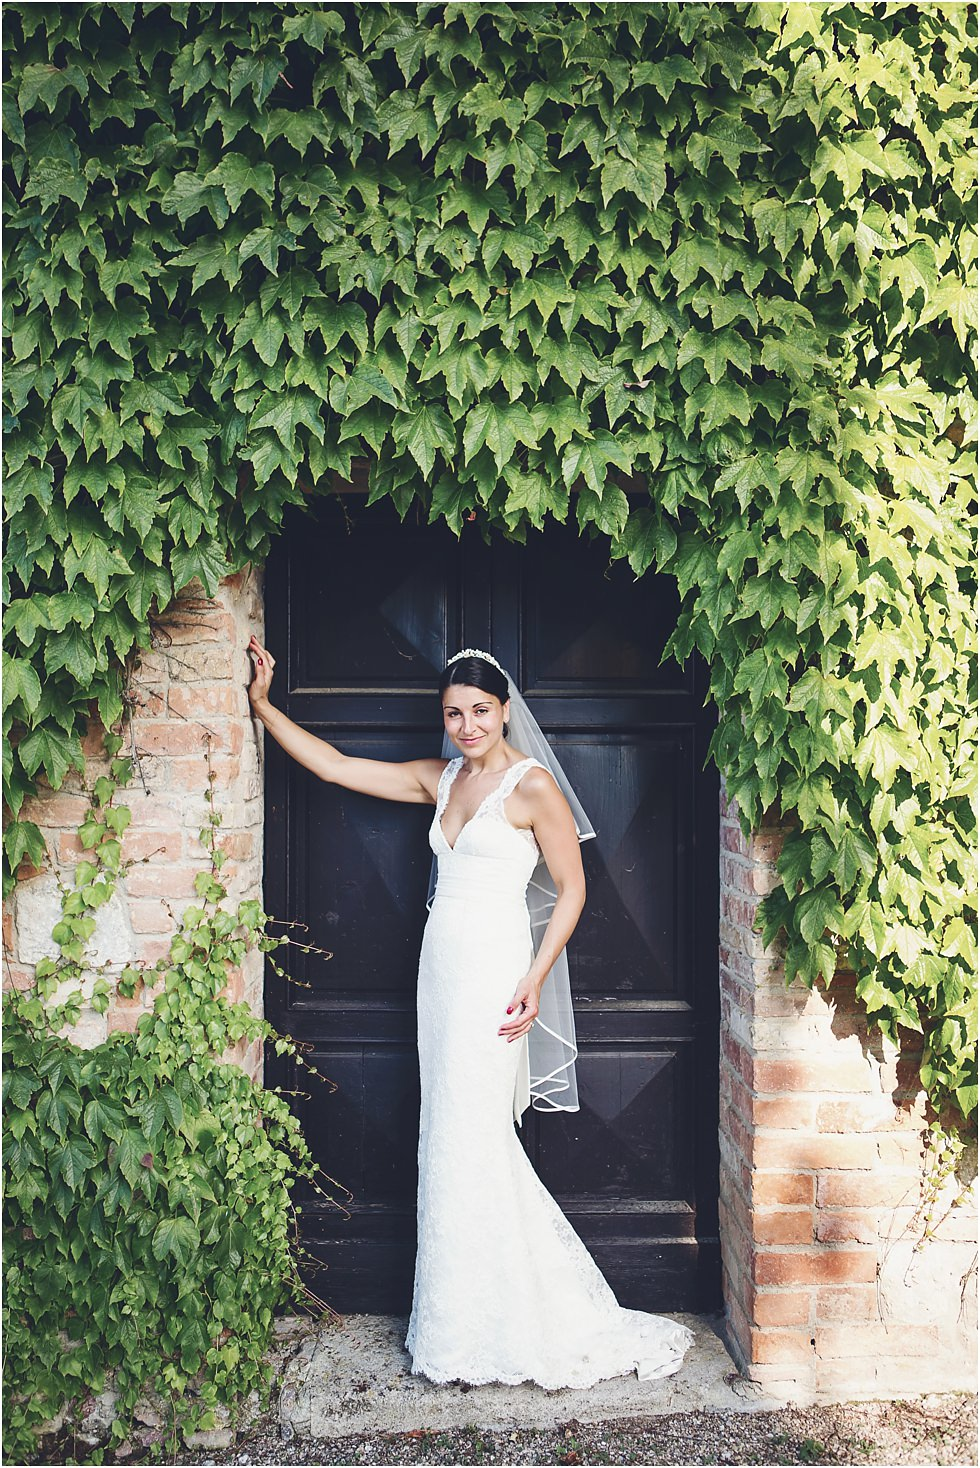 Cristina Rossi Photography Destination Wedding Italy_1299